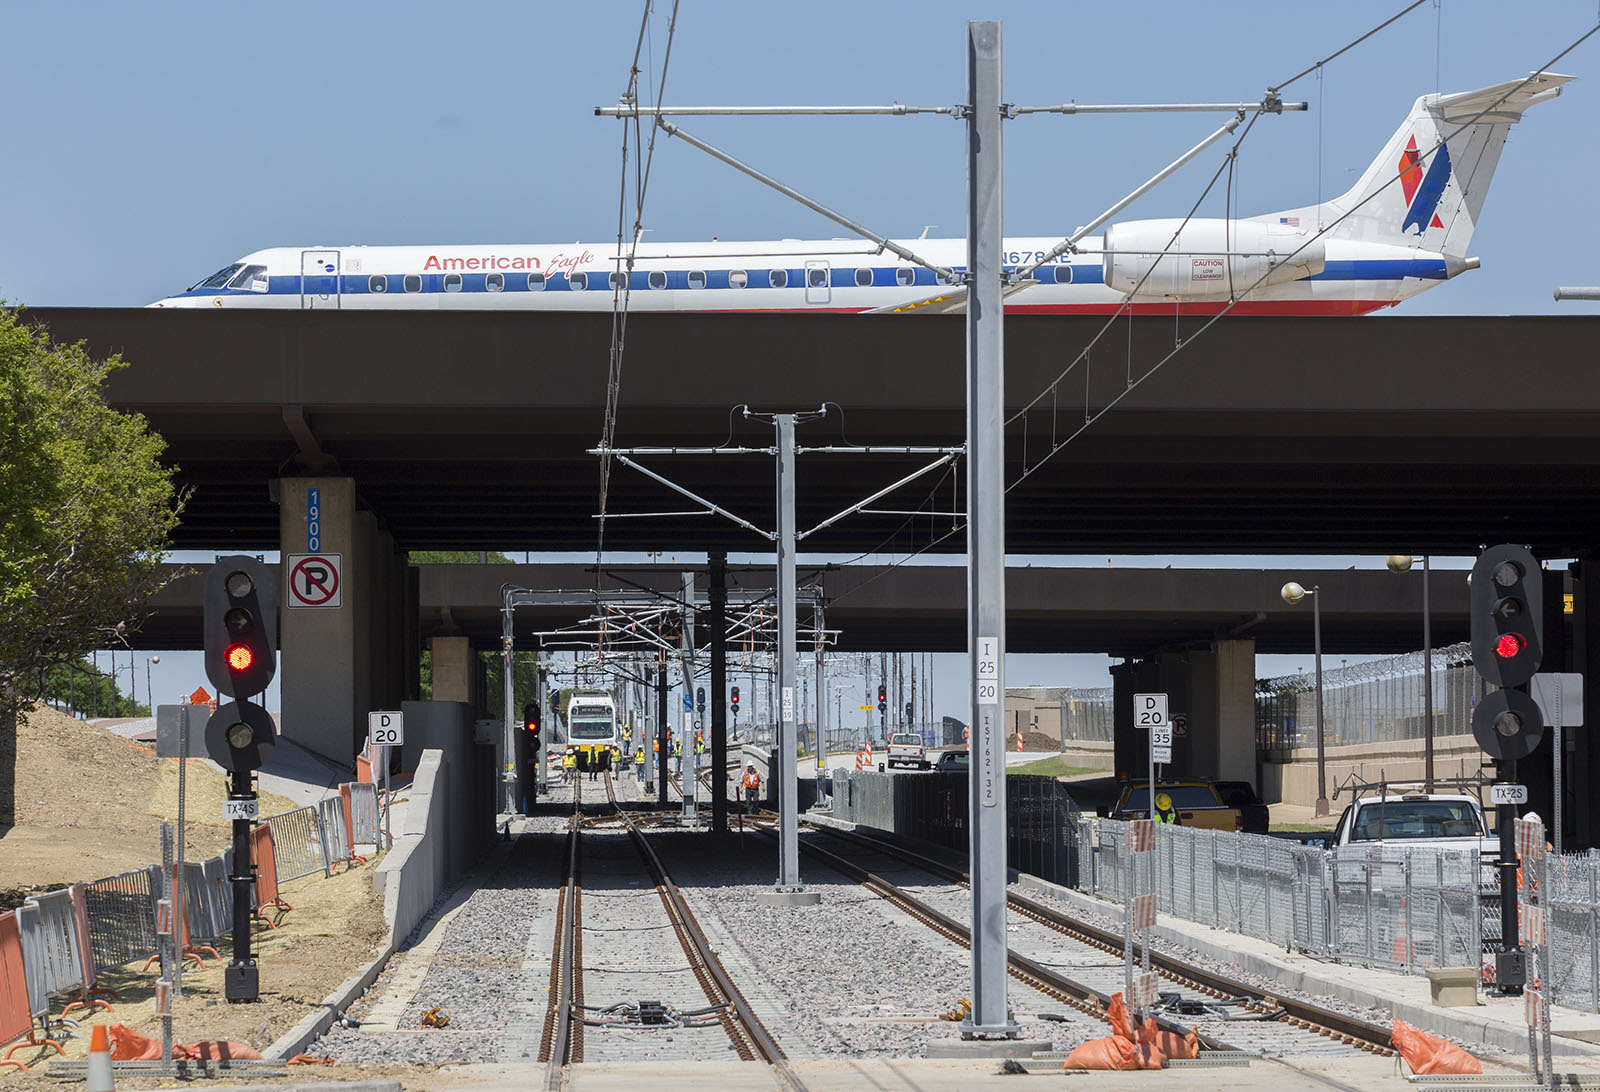 Dart Begins Light Rail Train Testing To Dfw Airport